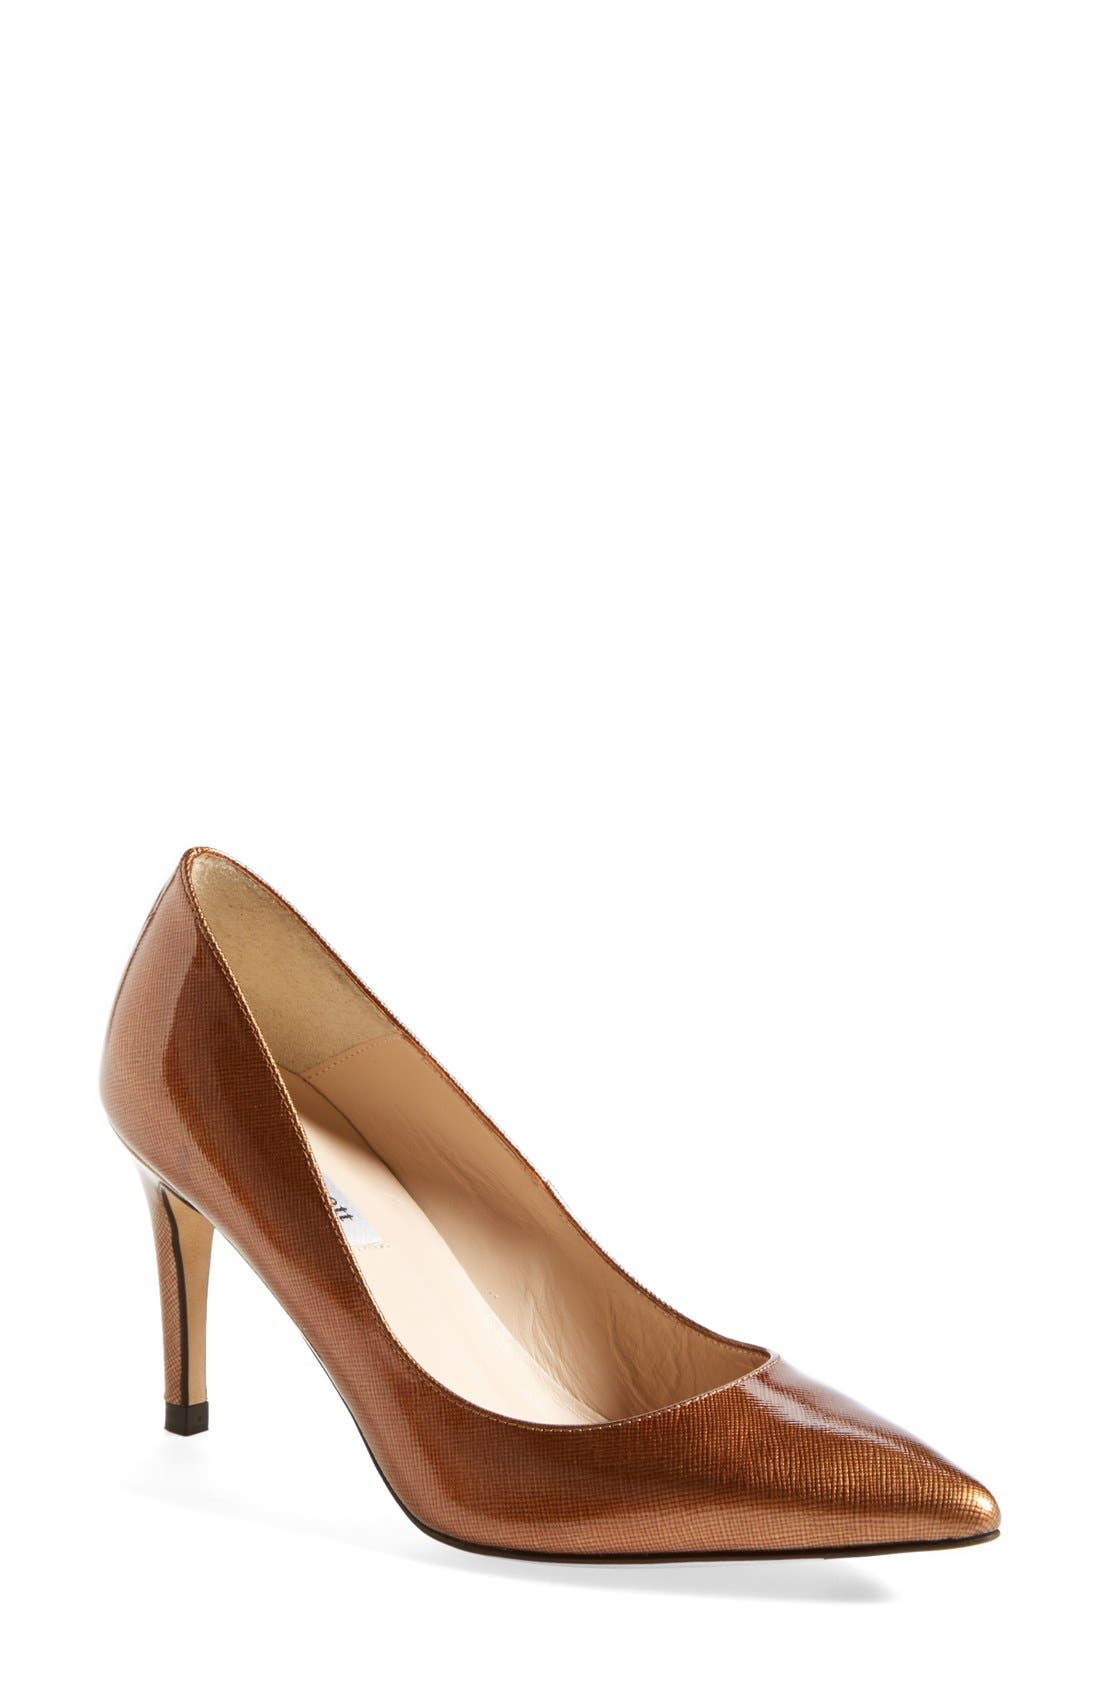 Alternate Image 1 Selected - L.K. Bennett 'Floret' Metallic Saffiano Leather Pointy Toe Pump (Women)